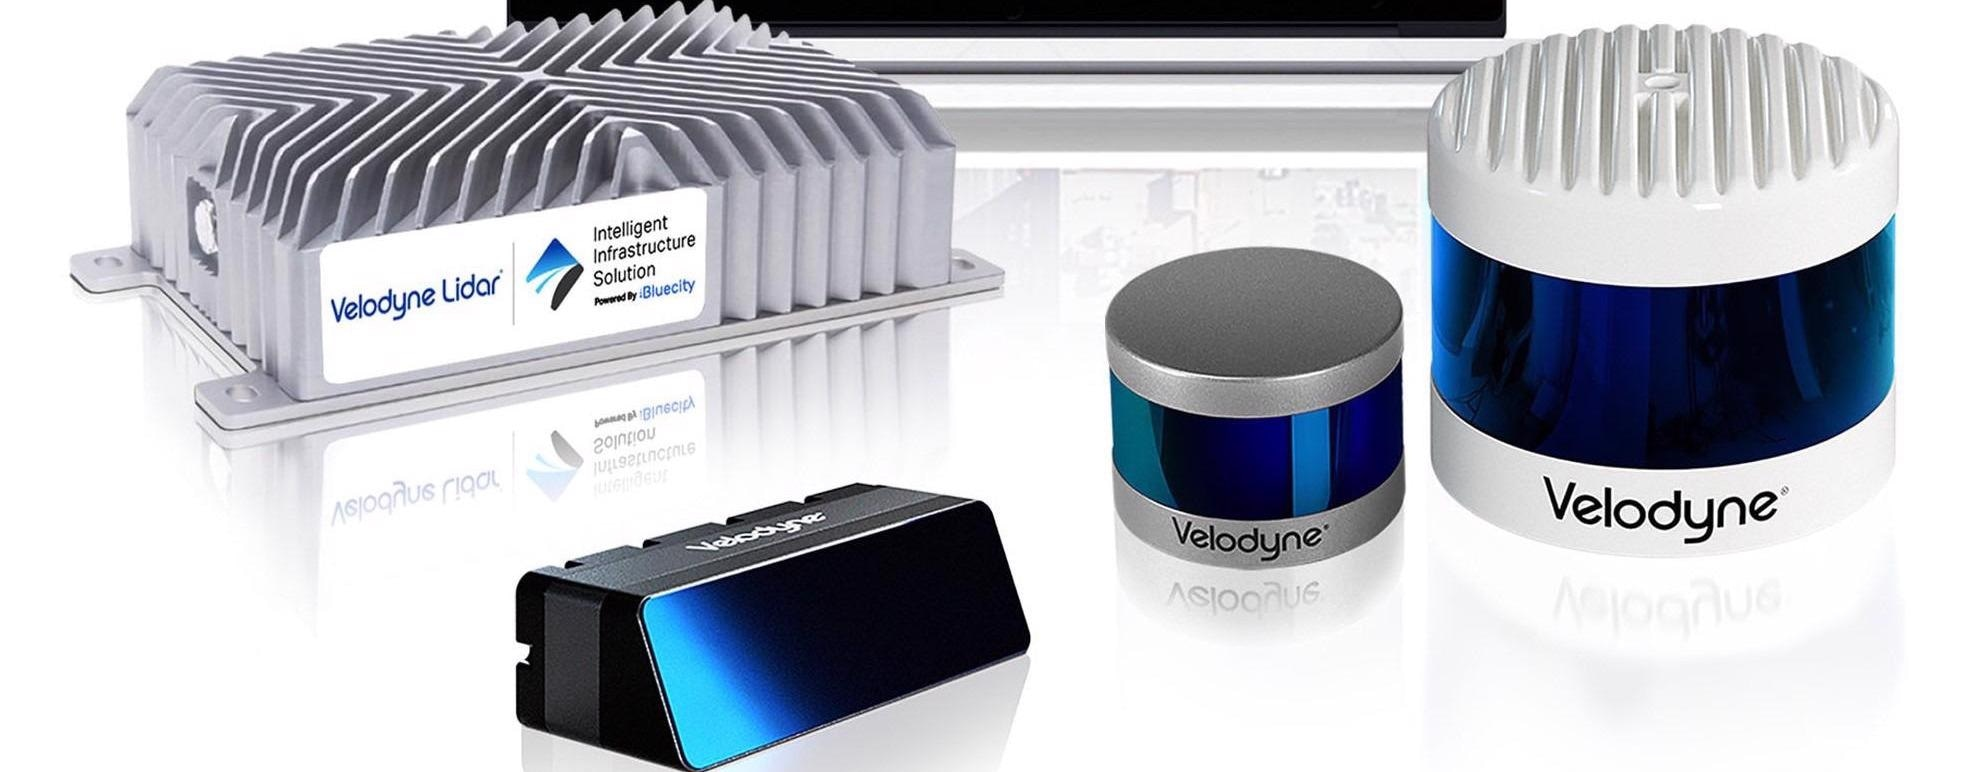 Velodyne Lidar Launches Breakthrough Intelligent Infrastructure Solution